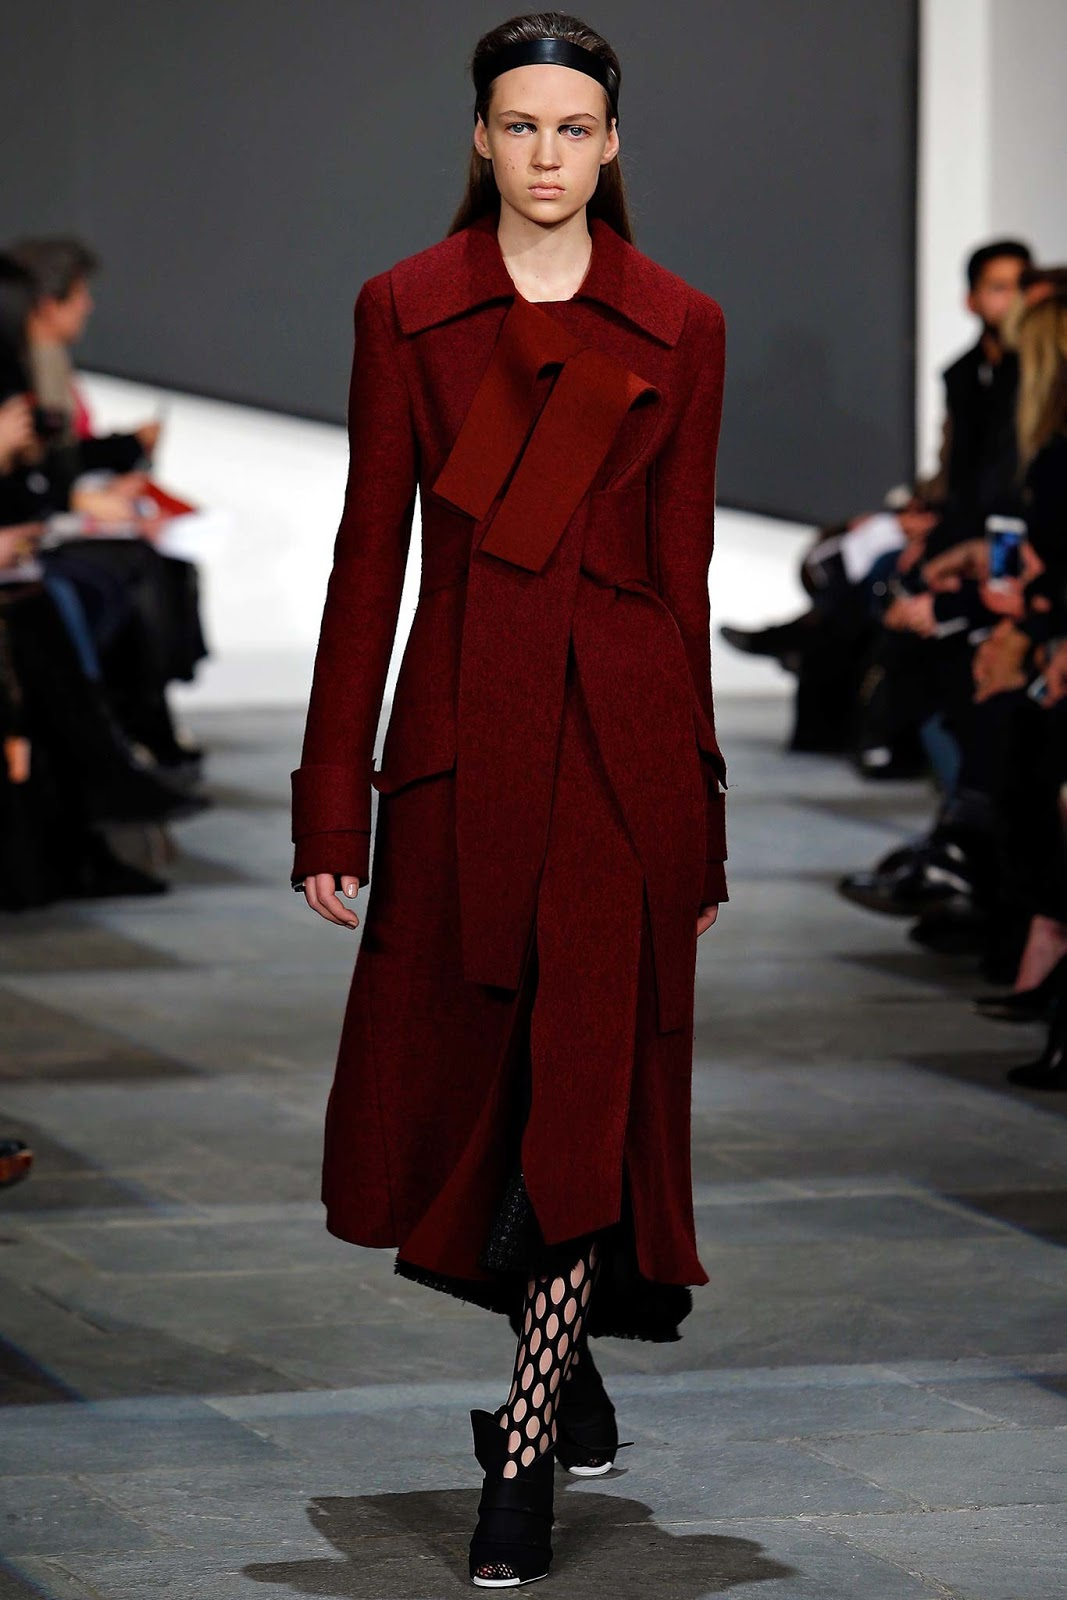 Trench coats as seen on a runway at Proenza Schouler Autumn/Winter 2015 via www.fashionedbylove.co.uk